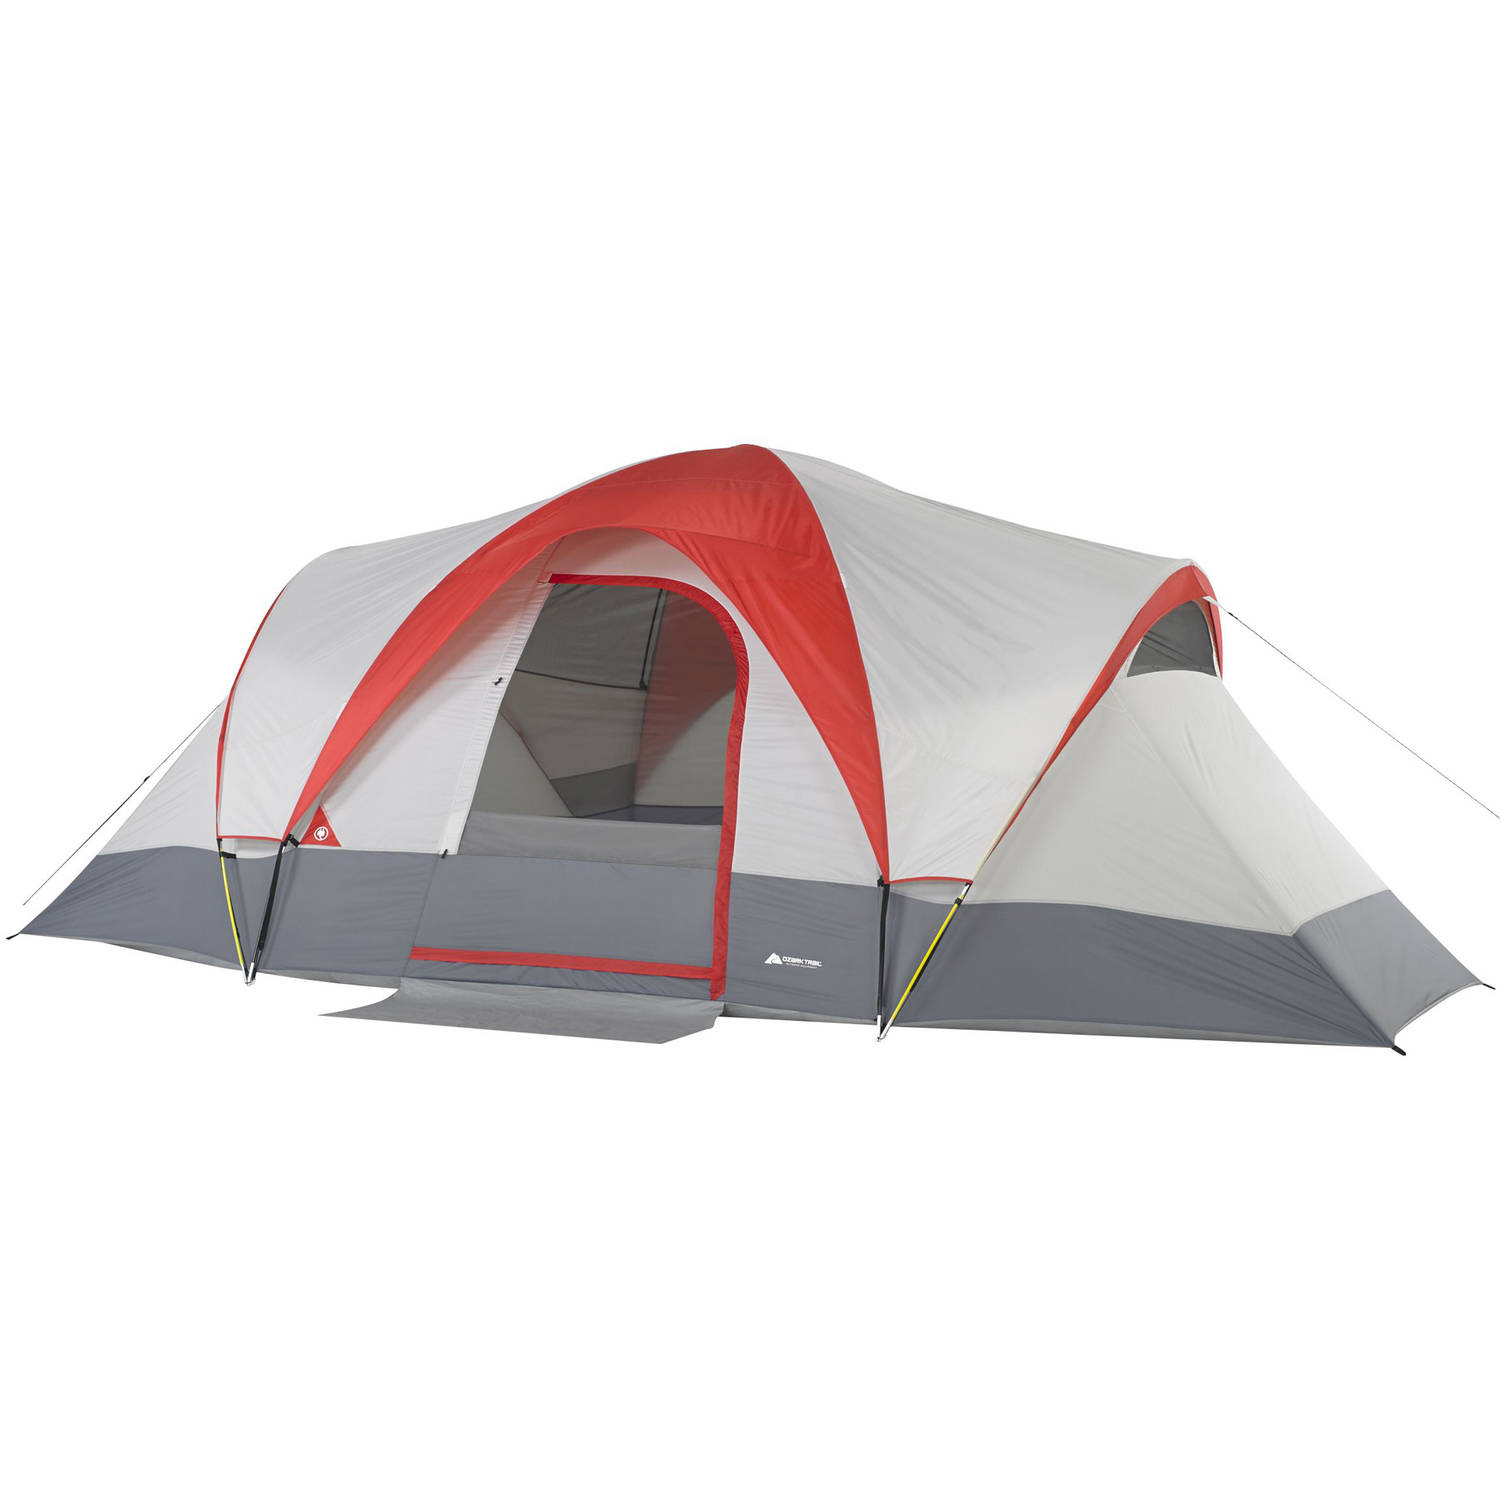 ozark trail weatherbuster 9-person dome tent - walmart.com NVYXBDZ